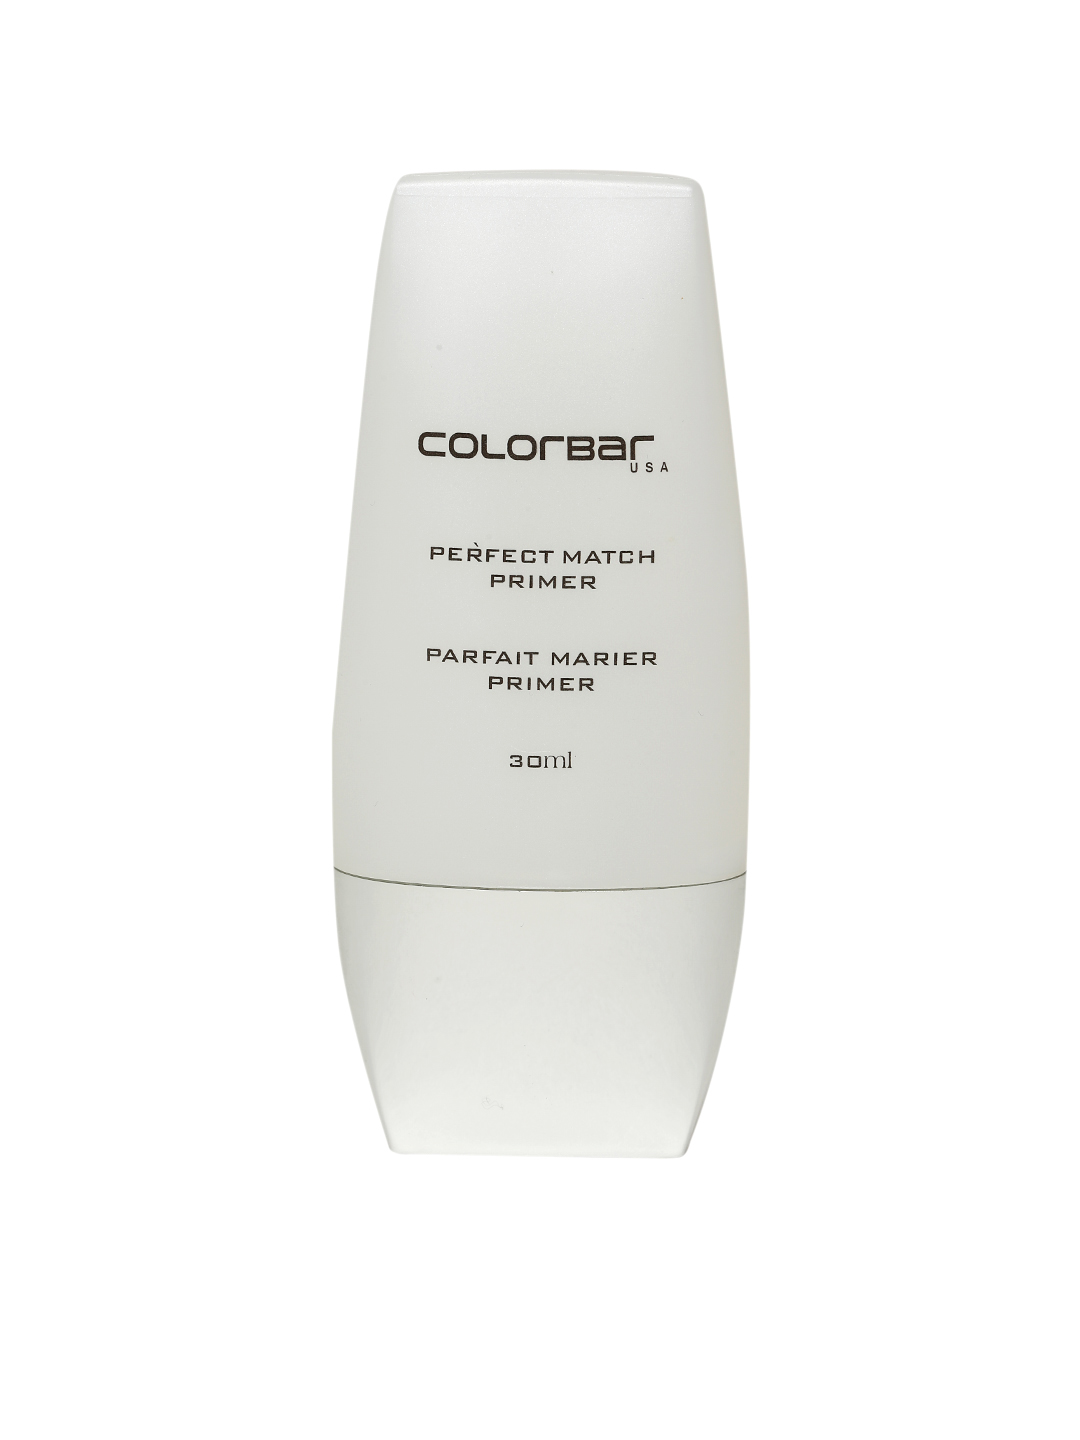 Colorbar Perfect Match Primer 30 ml Price in India